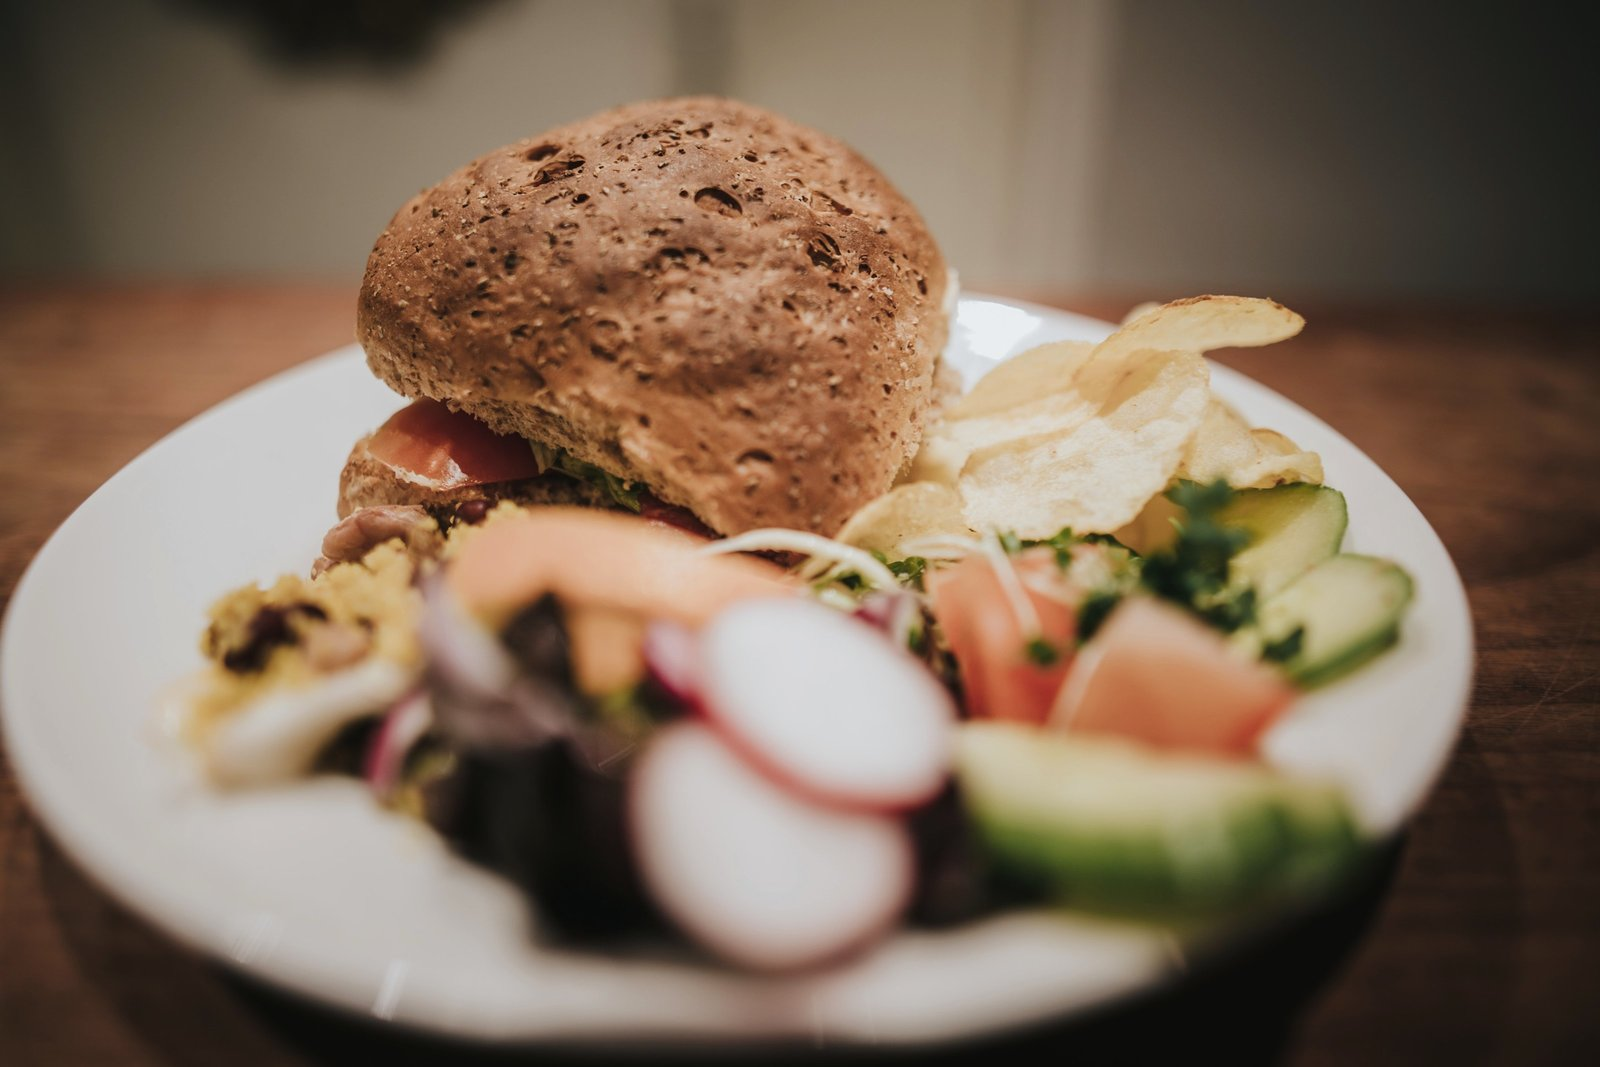 Sandwidge & Salad served at Baldry's Tearoom in Grasmere Village, The Lake District